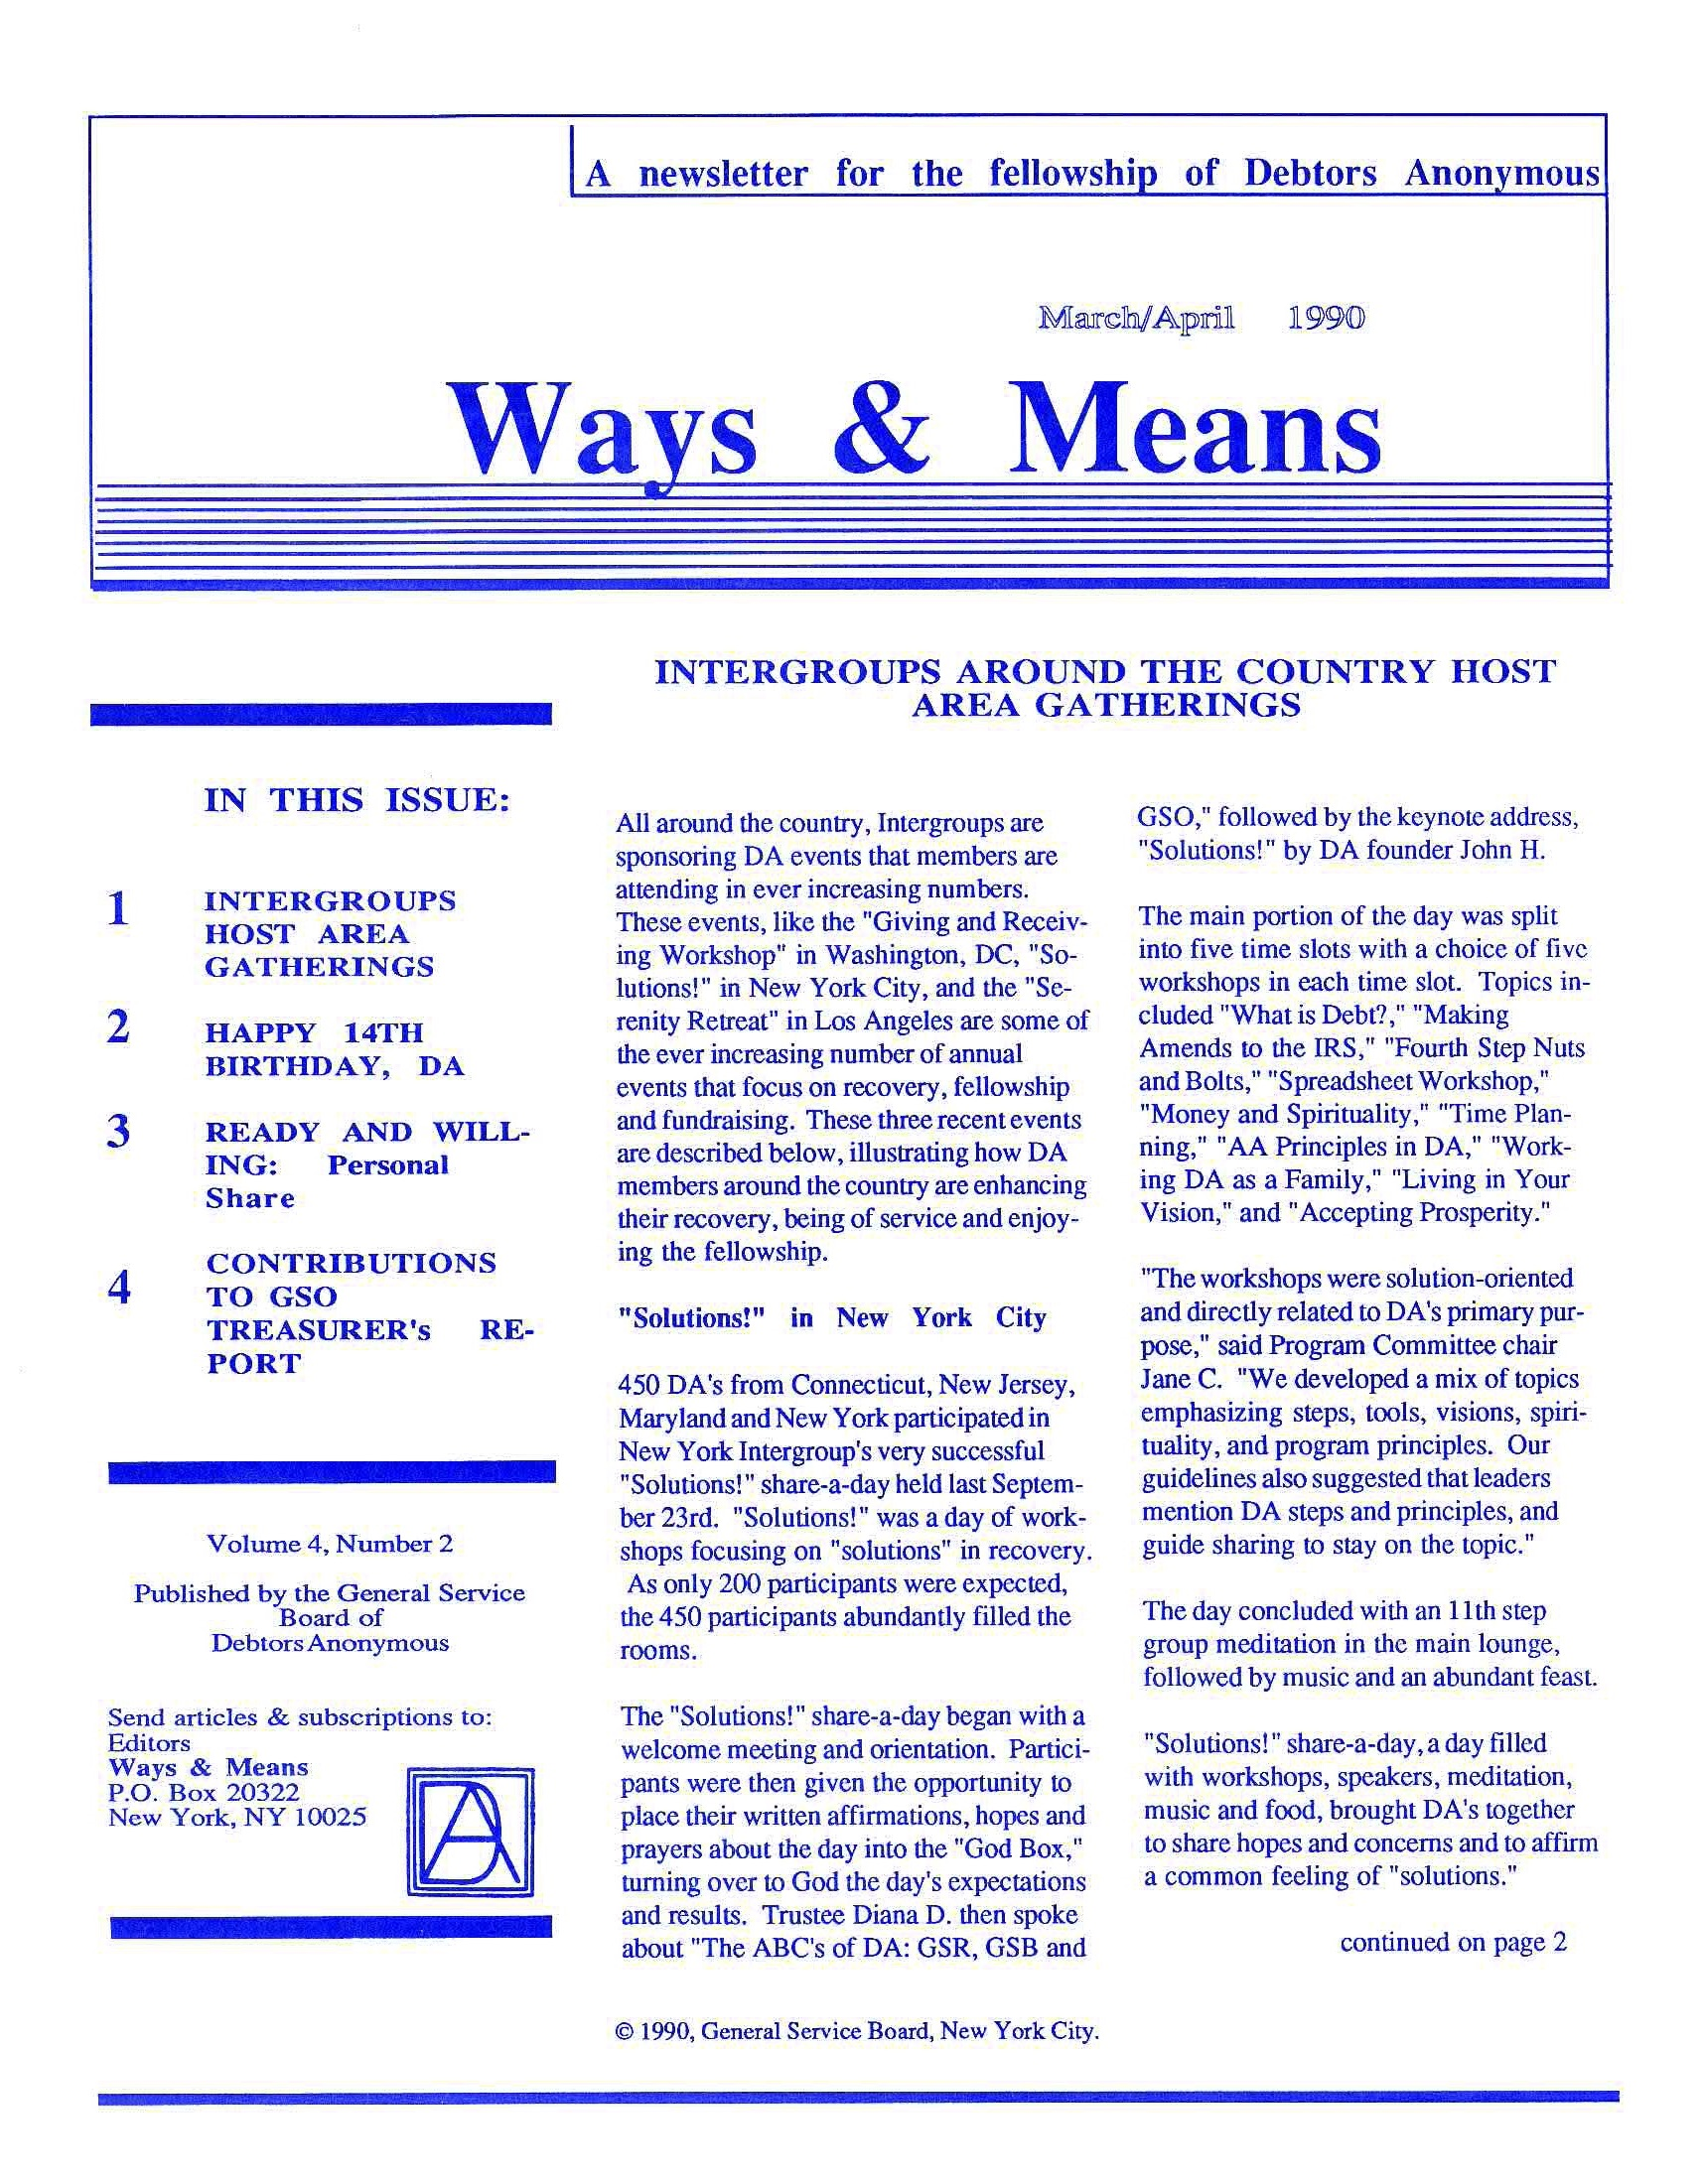 Ways & Means 2nd QTR 1990